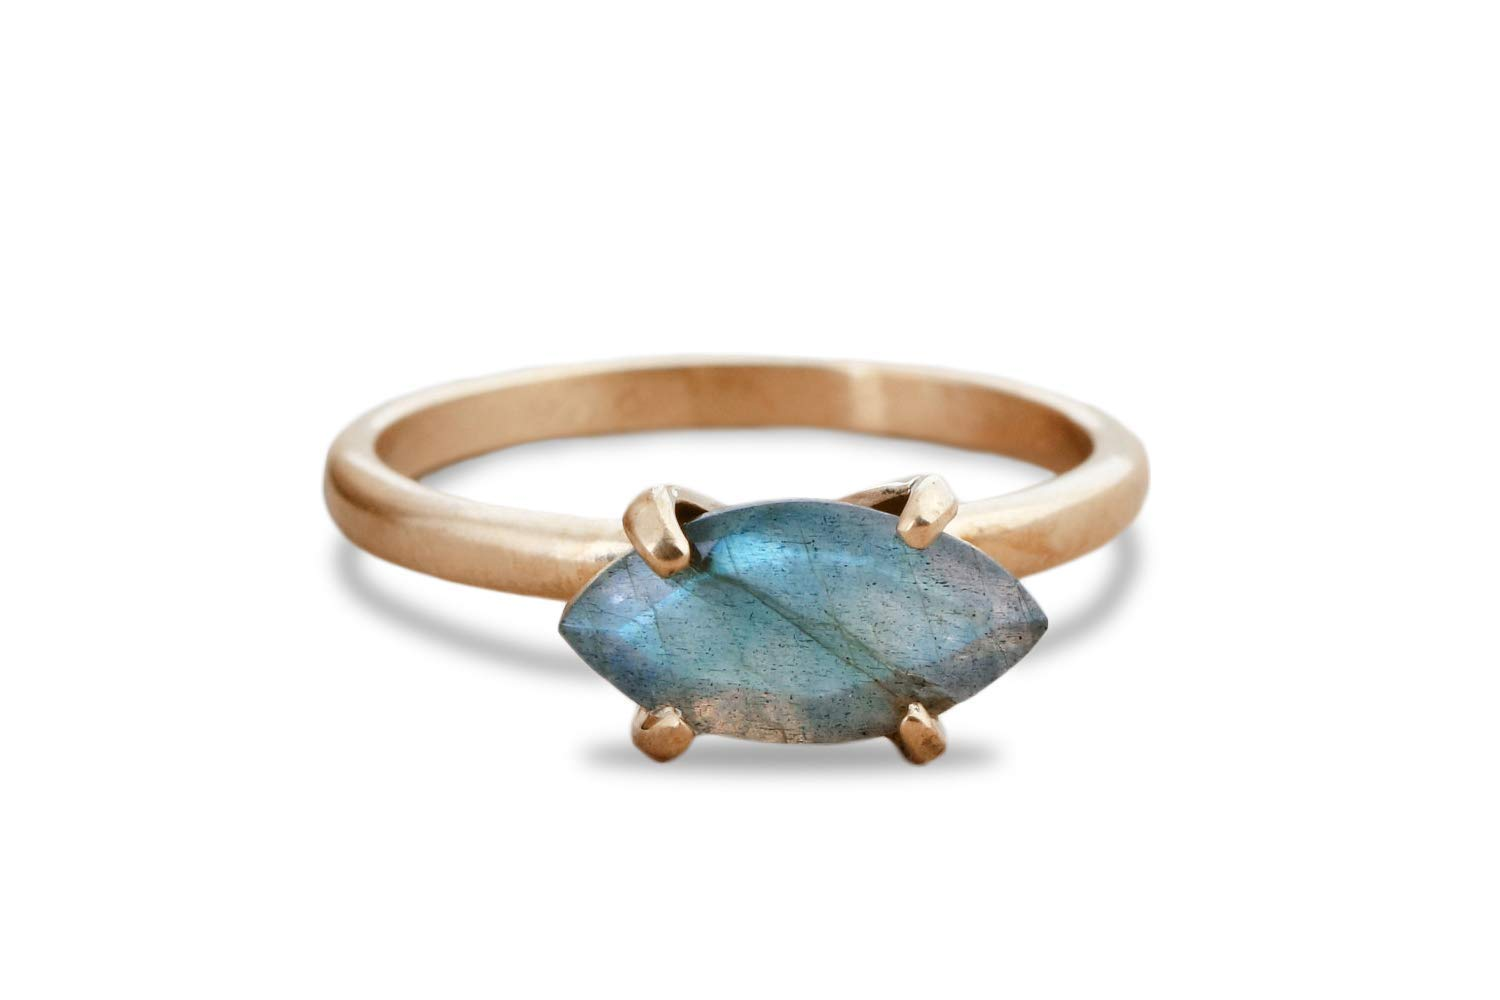 Anemone Jewelry Labradorite Ring in Rose Gold Artisan 14k Rings for Women with Gift Box Birthdays and Everyday Fashion Statement Cocktail Ring for Prom Weddings